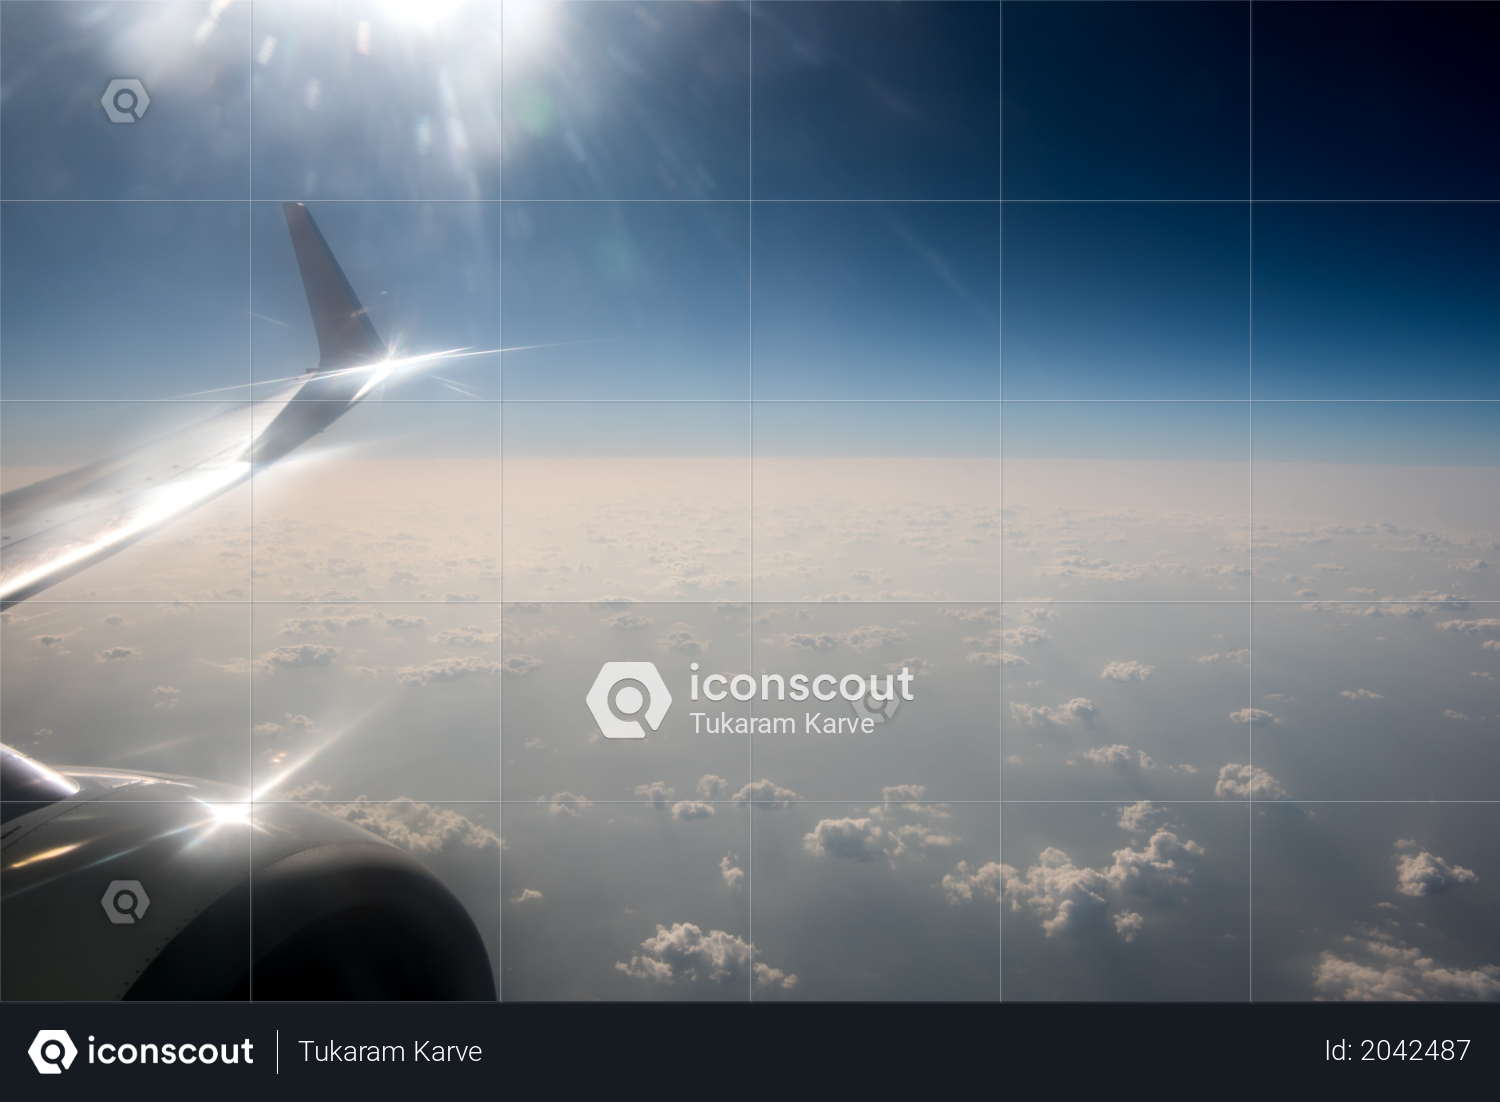 Premium Sky View Through An Airplane Window View Of Clouds And